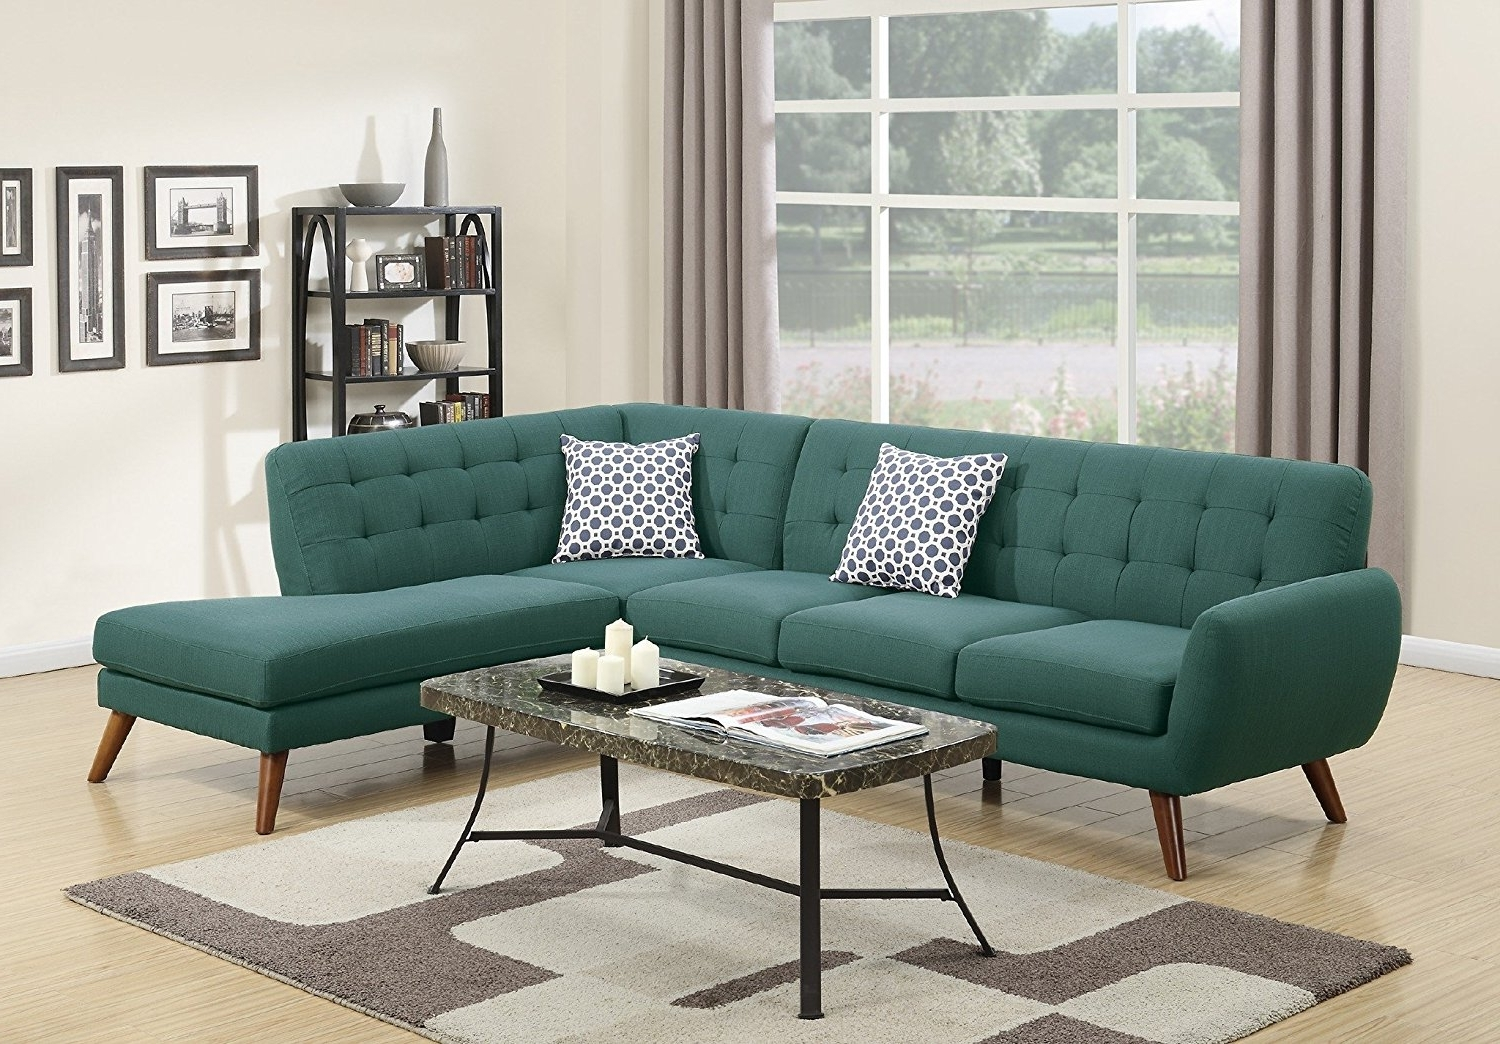 Widely Used Retro Sofas For Amazon: Modern Retro Sectional Sofa (Laguna): Kitchen & Dining (View 15 of 15)